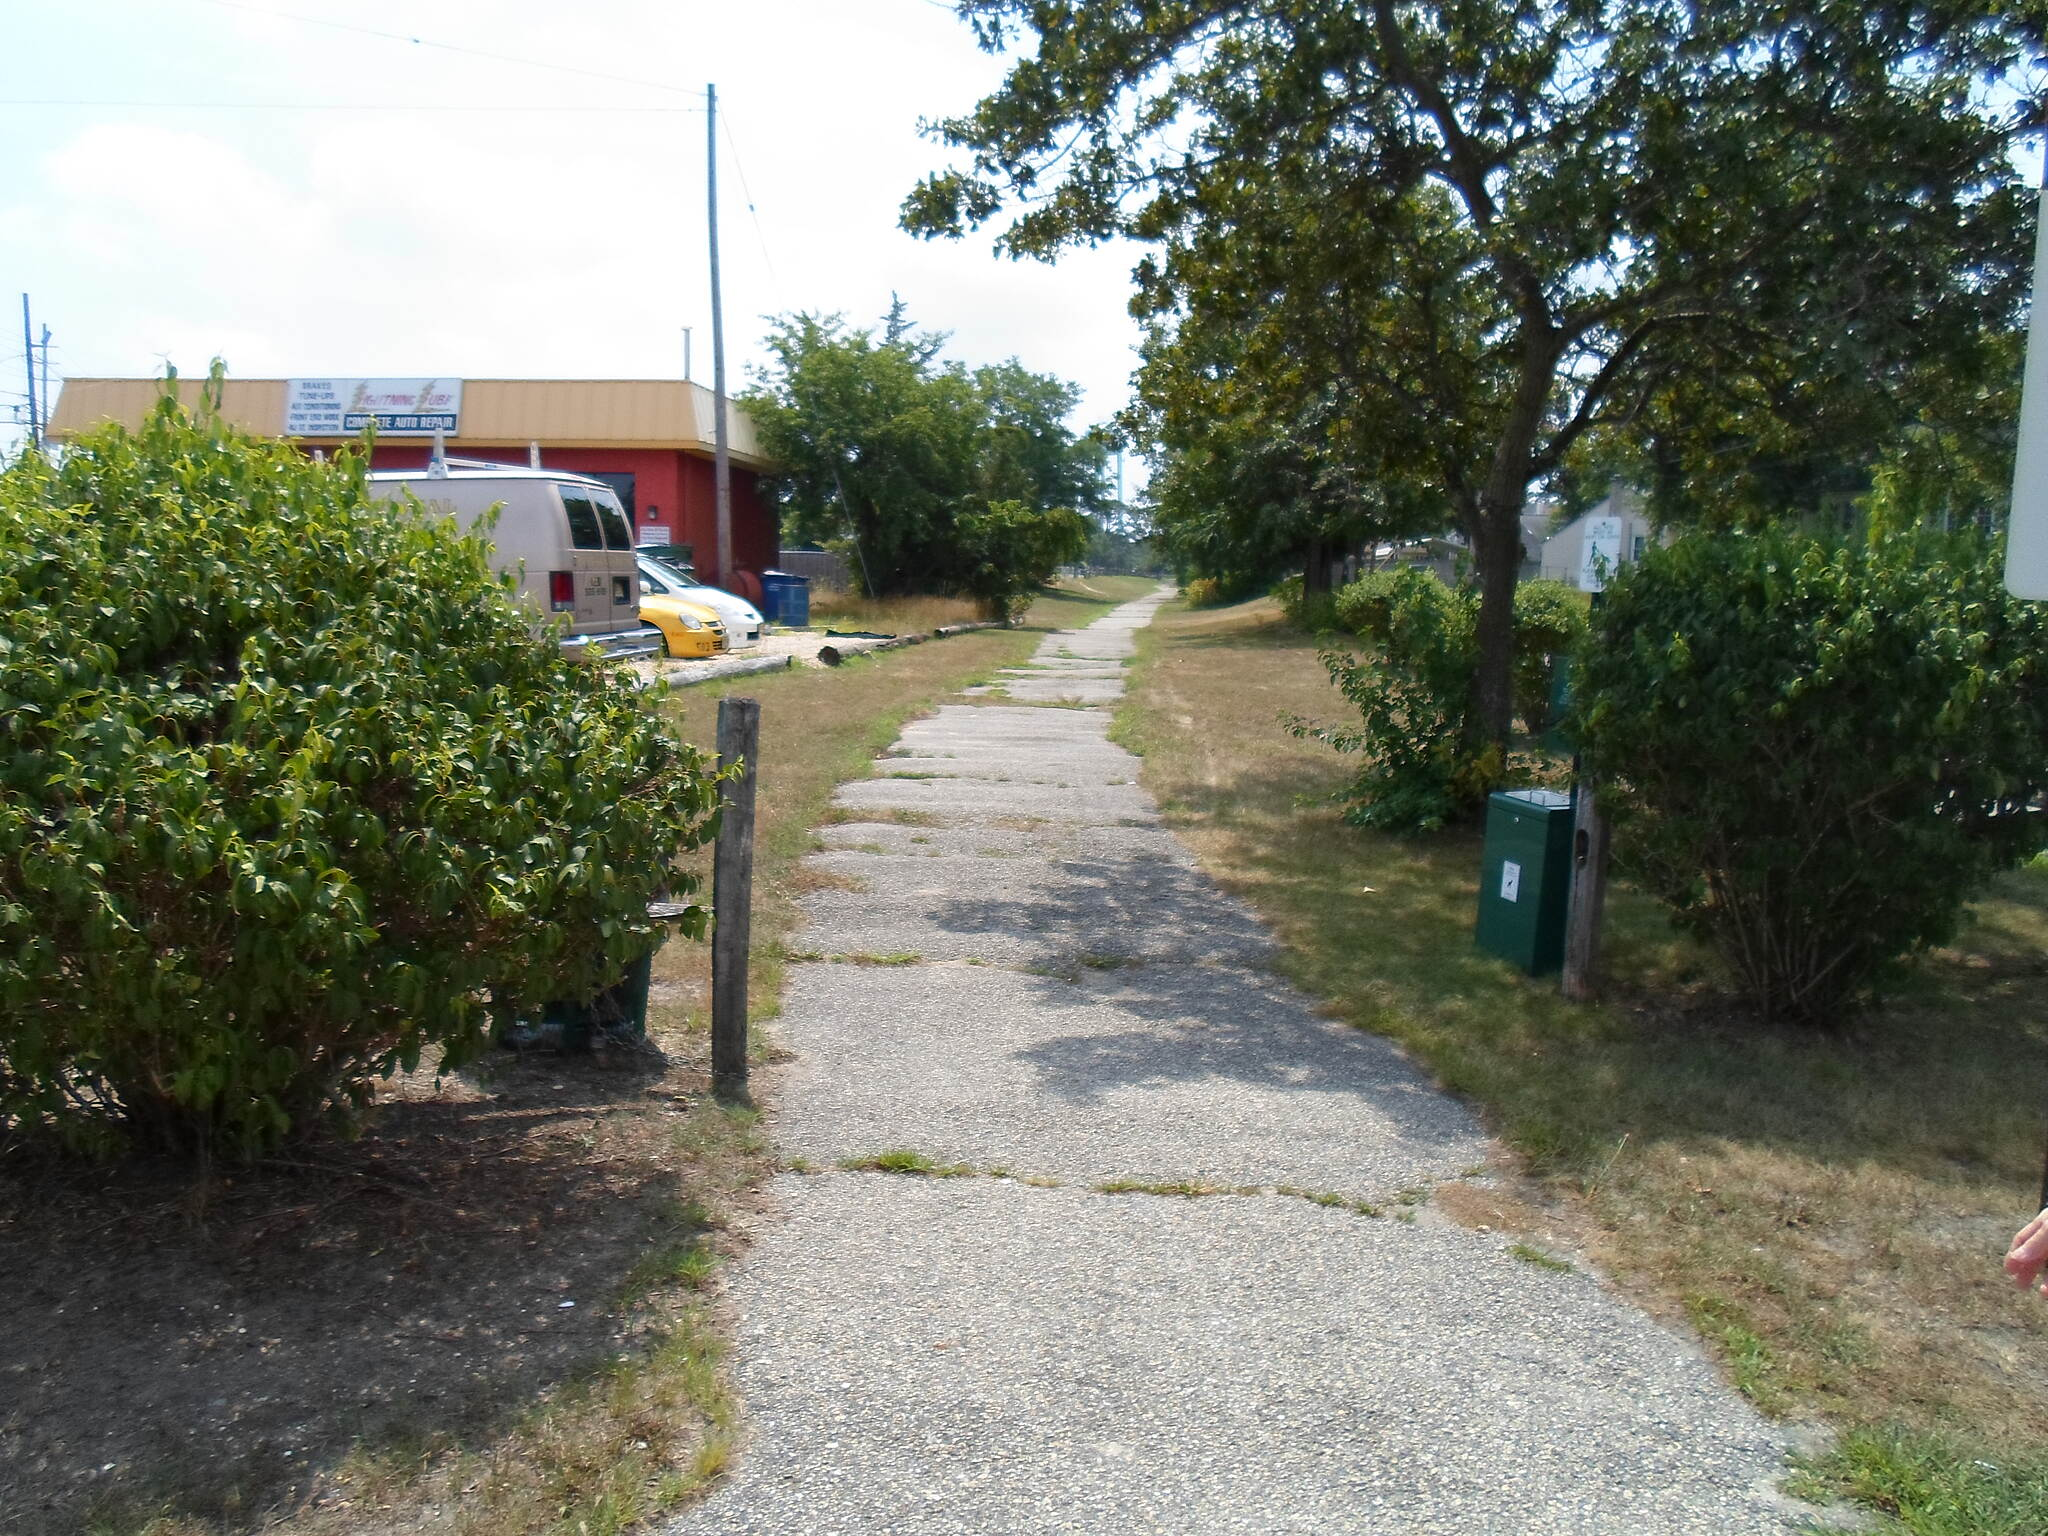 Barnegat Branch Trail Beachwood Borough Trail Northern terminus of the trail, off Route 166 (Atlantic City Blvd.). Taken on a hot, summer day in July 2013.